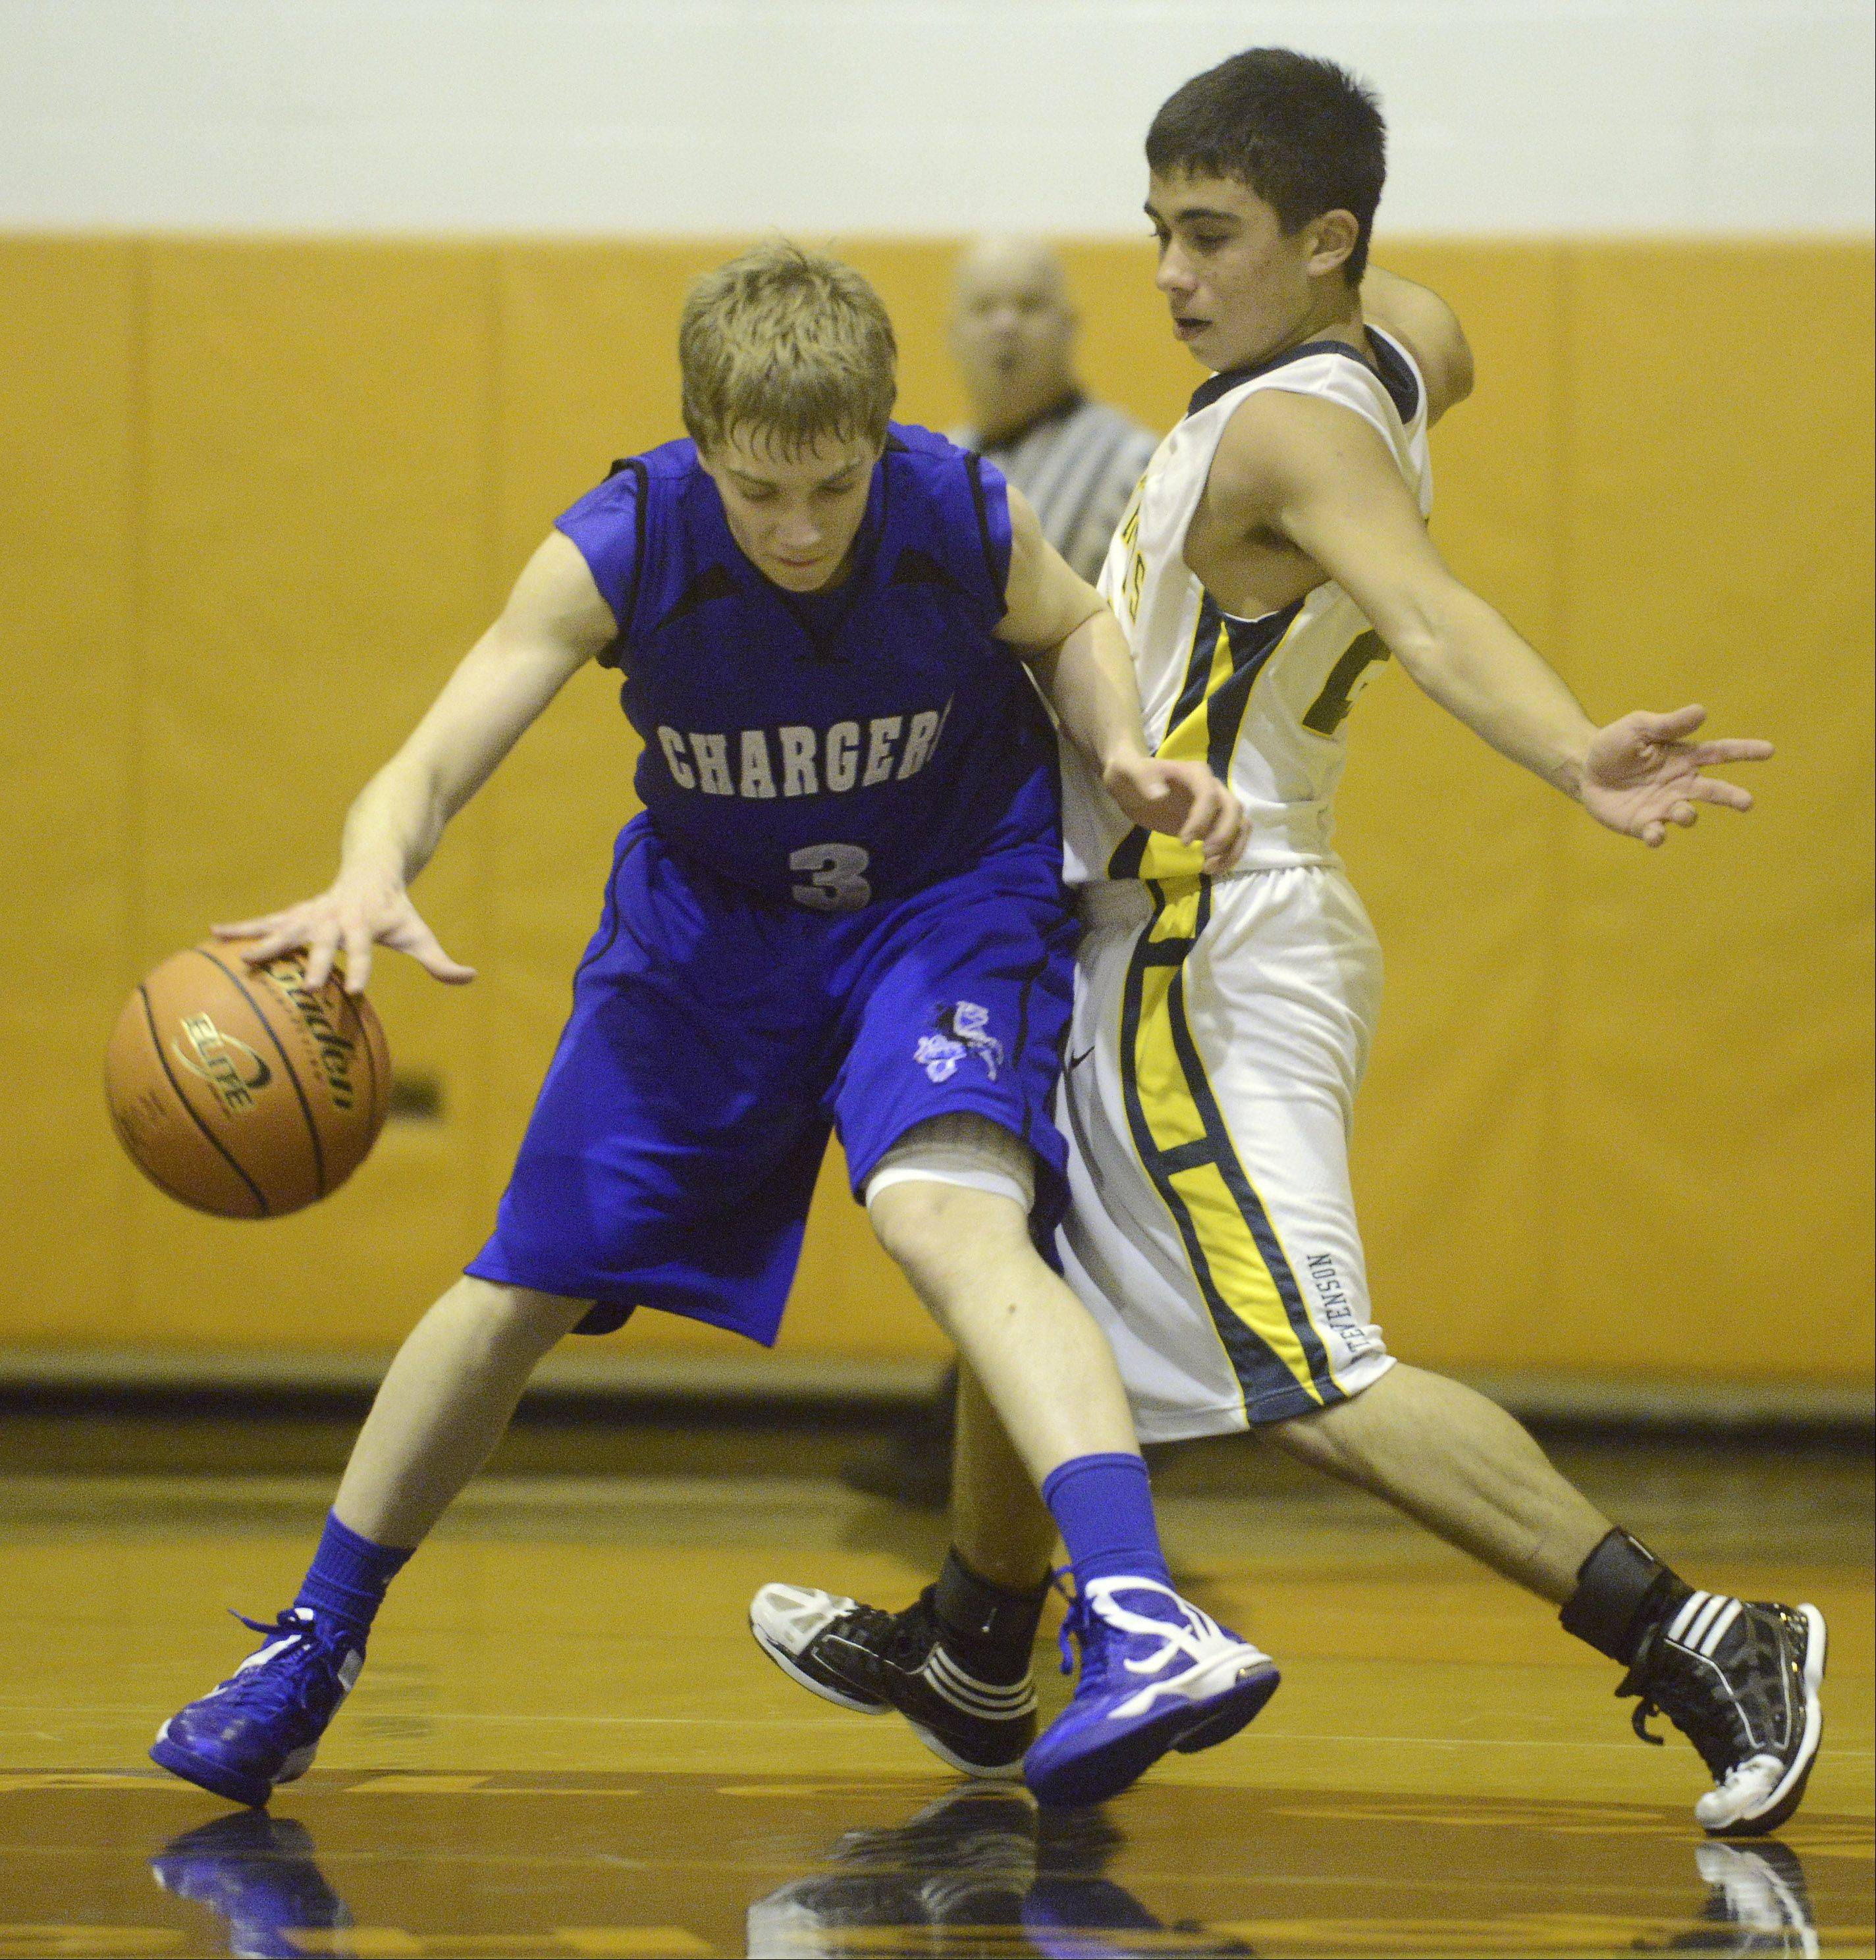 Christian Liberty Academy's Ben Daniel, left, is closely guarded by Stevenson's Justin Berkson during Wednesday's game at Buffalo Grove.